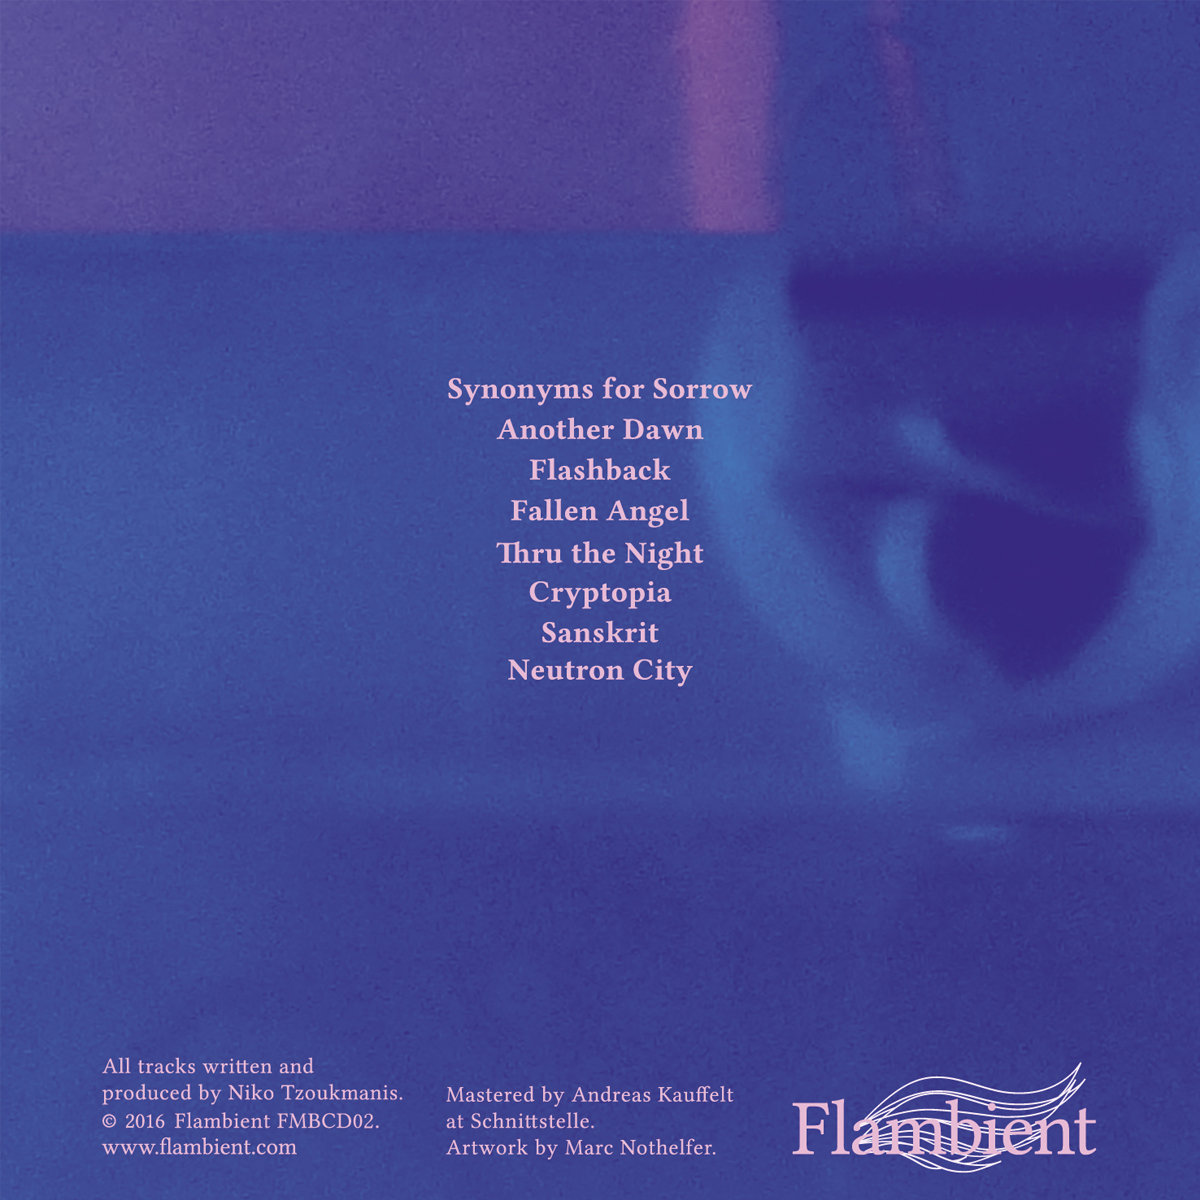 Worksheet Silent Synonyms synonyms for sorrow flambient in cardboard slipcase designed by marc nothelfer mastered andreas kauffelt at schnittstelle includes unlimited streaming of tales from the silent